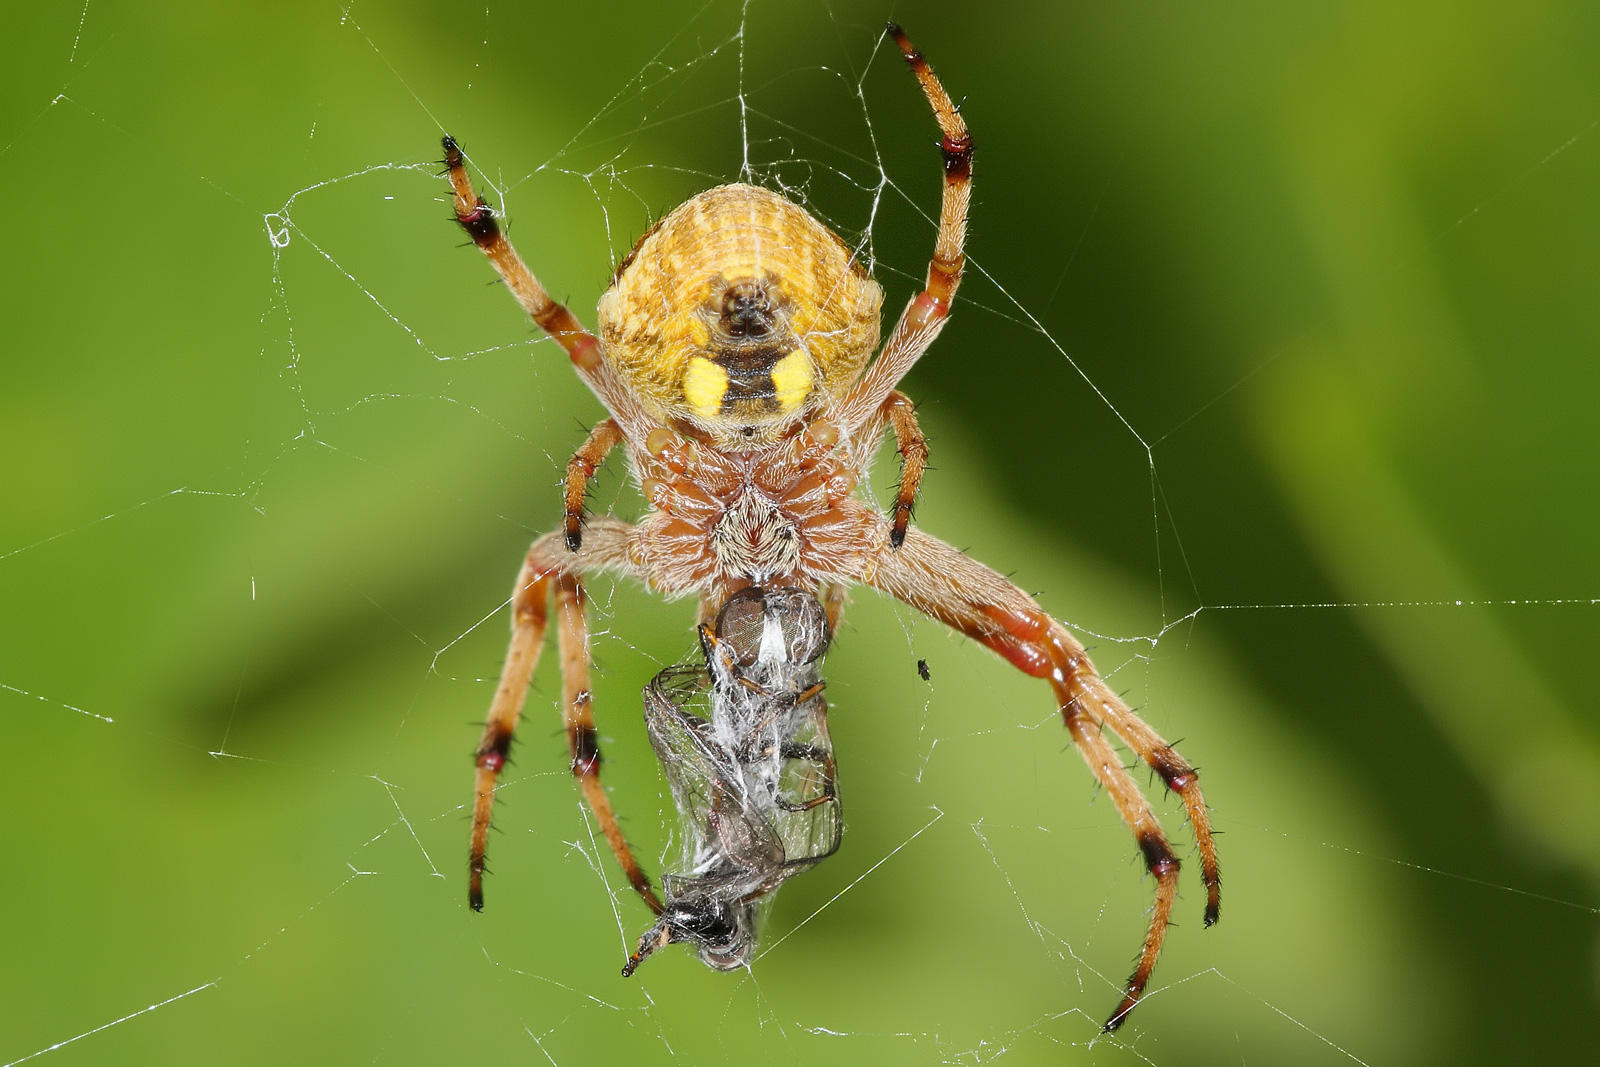 FileGarden orb weaver with robberflyjpg Wikimedia Commons